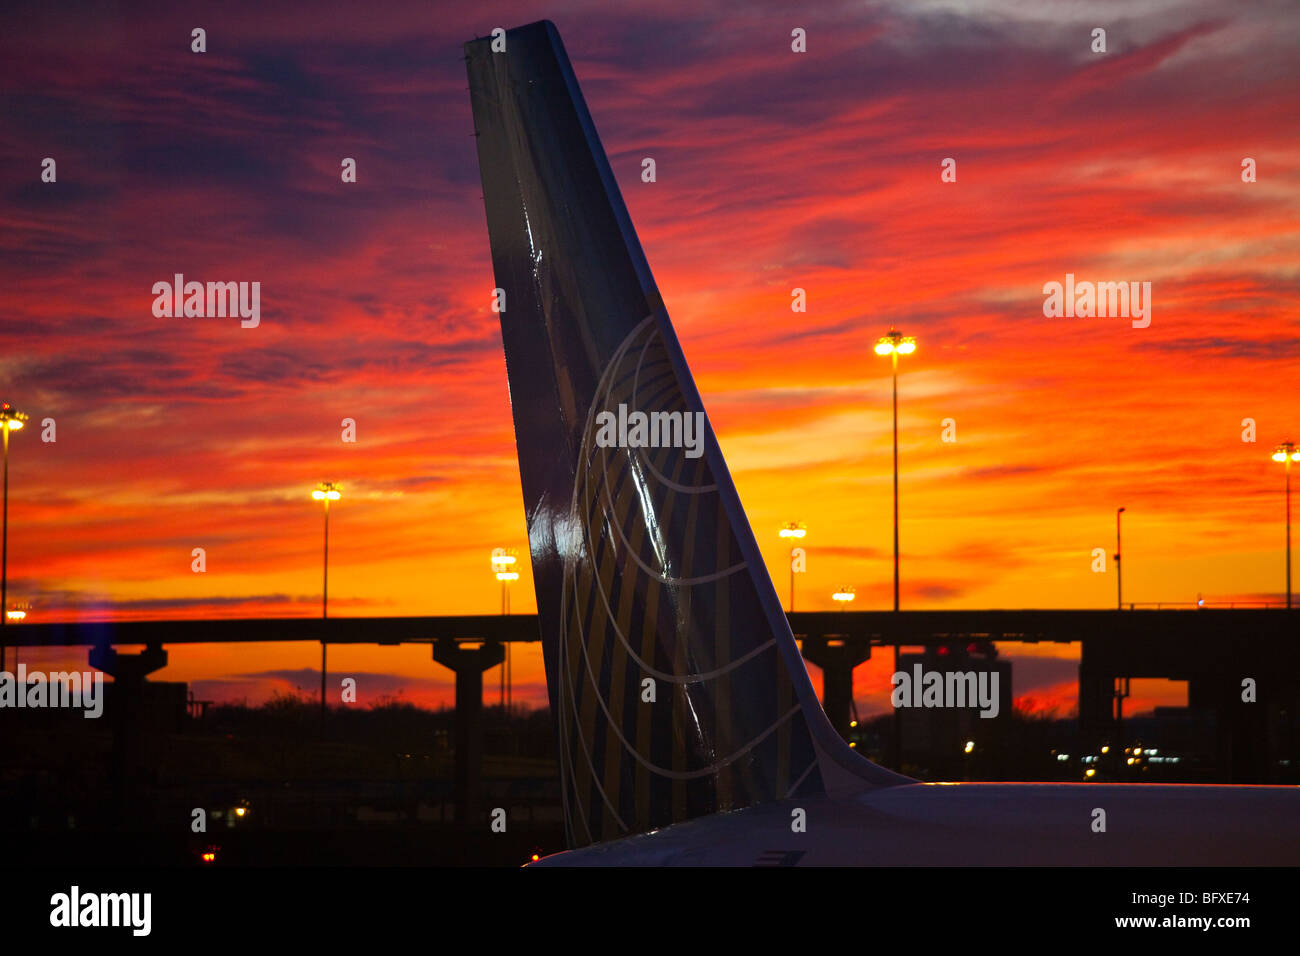 Sunset behind a Continental Airlines Airplane at Newark Liberty International Airport - Stock Image